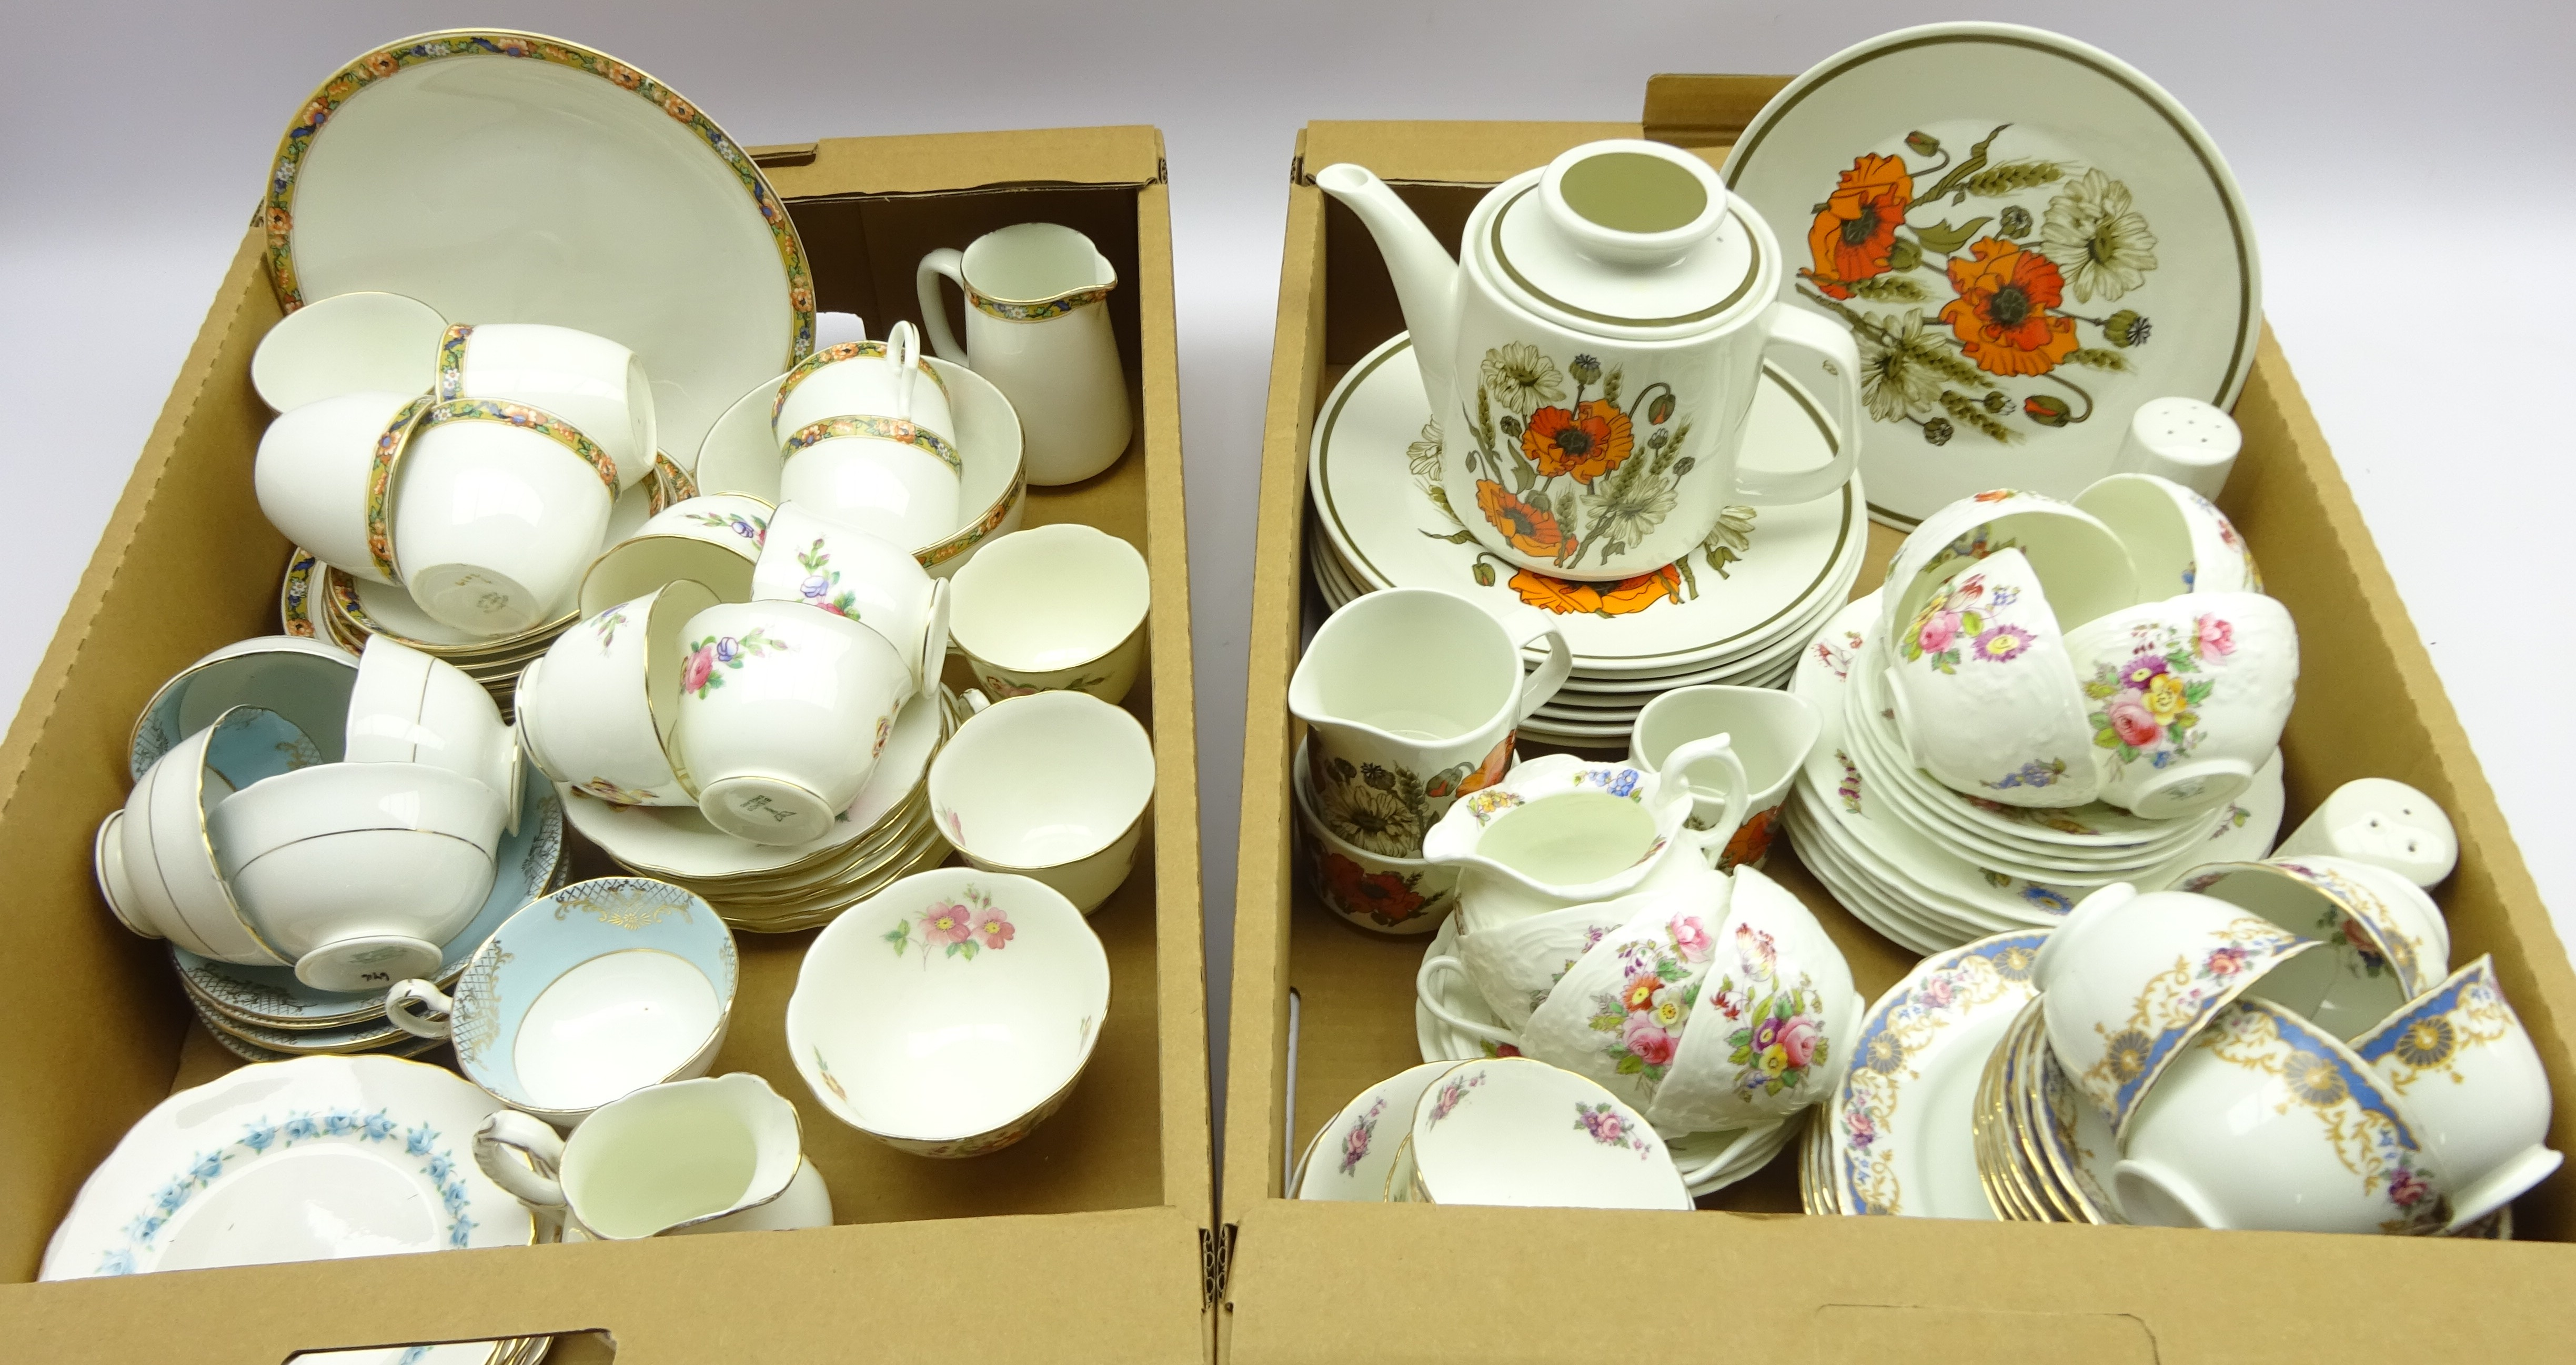 Lot 62 - Coalport part tea ware, with embossed and floral decorated design, Sevres Bone China part teaware,